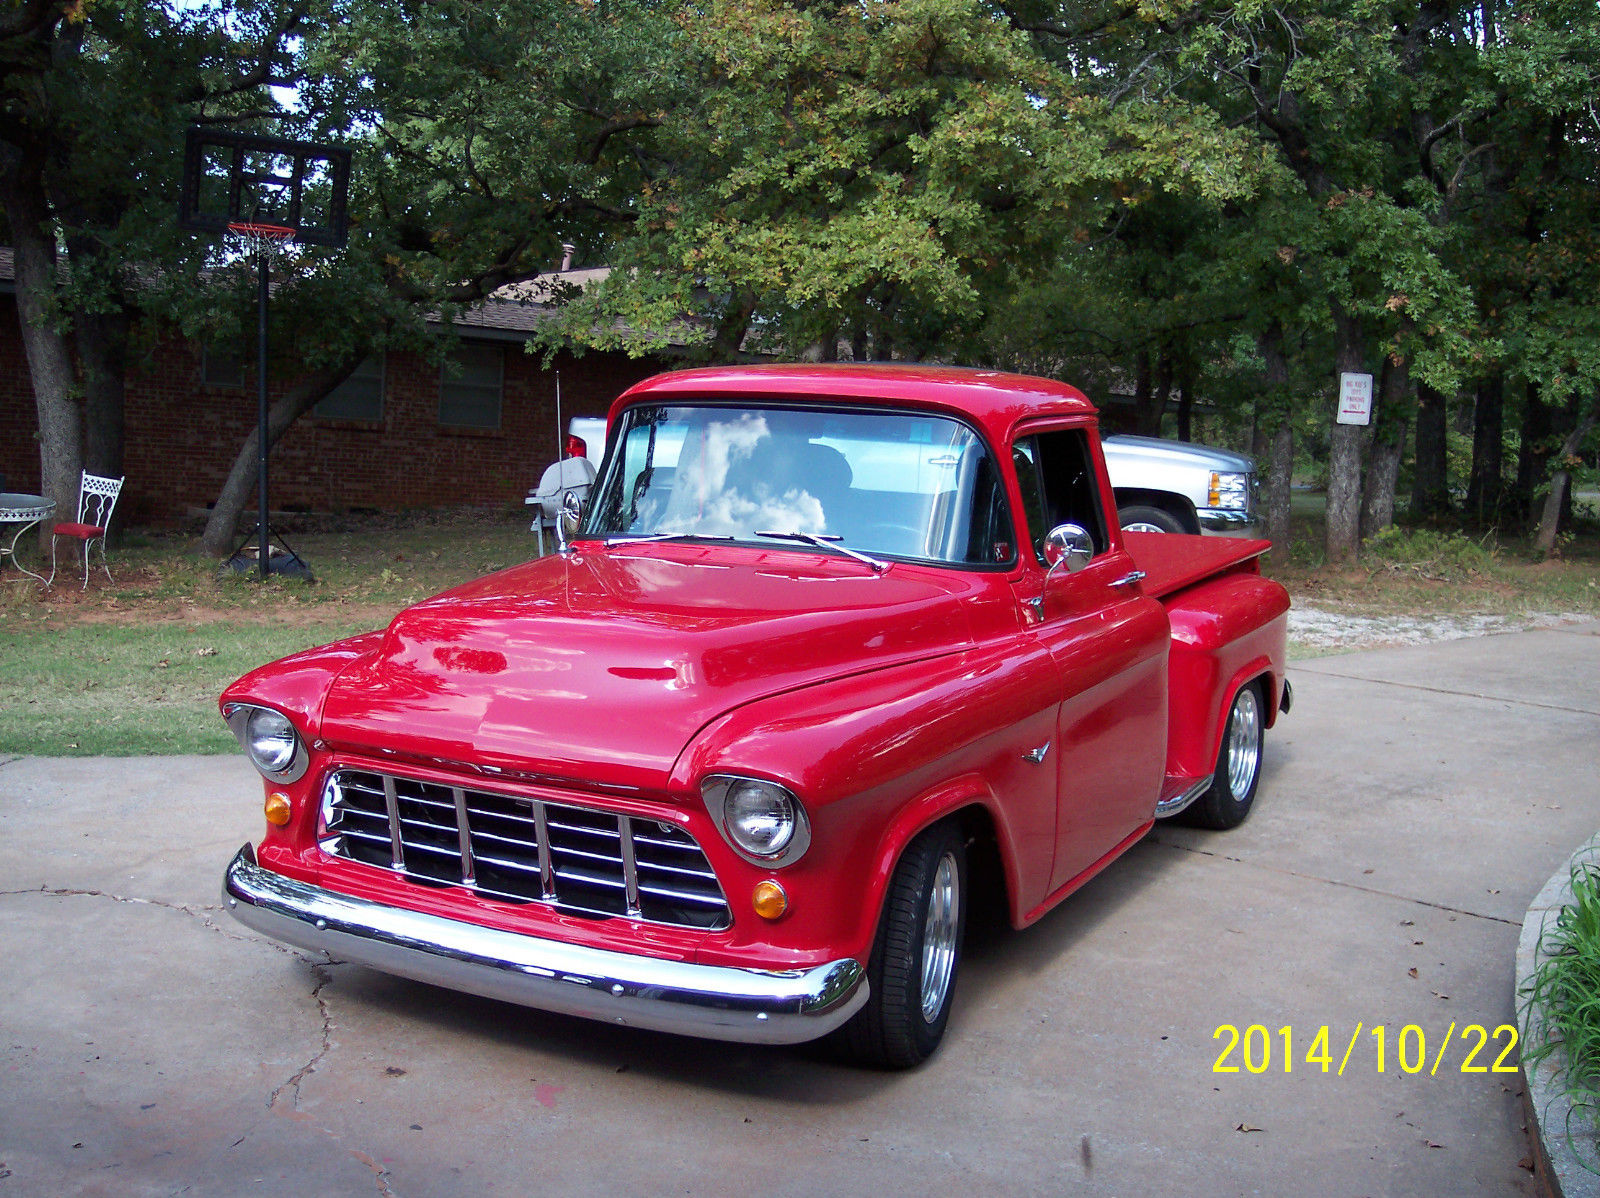 1955 Chevy Pickup Truck Street Rod Hot Rod Classic Chevrolet C K Pickup 1500 1955 For Sale